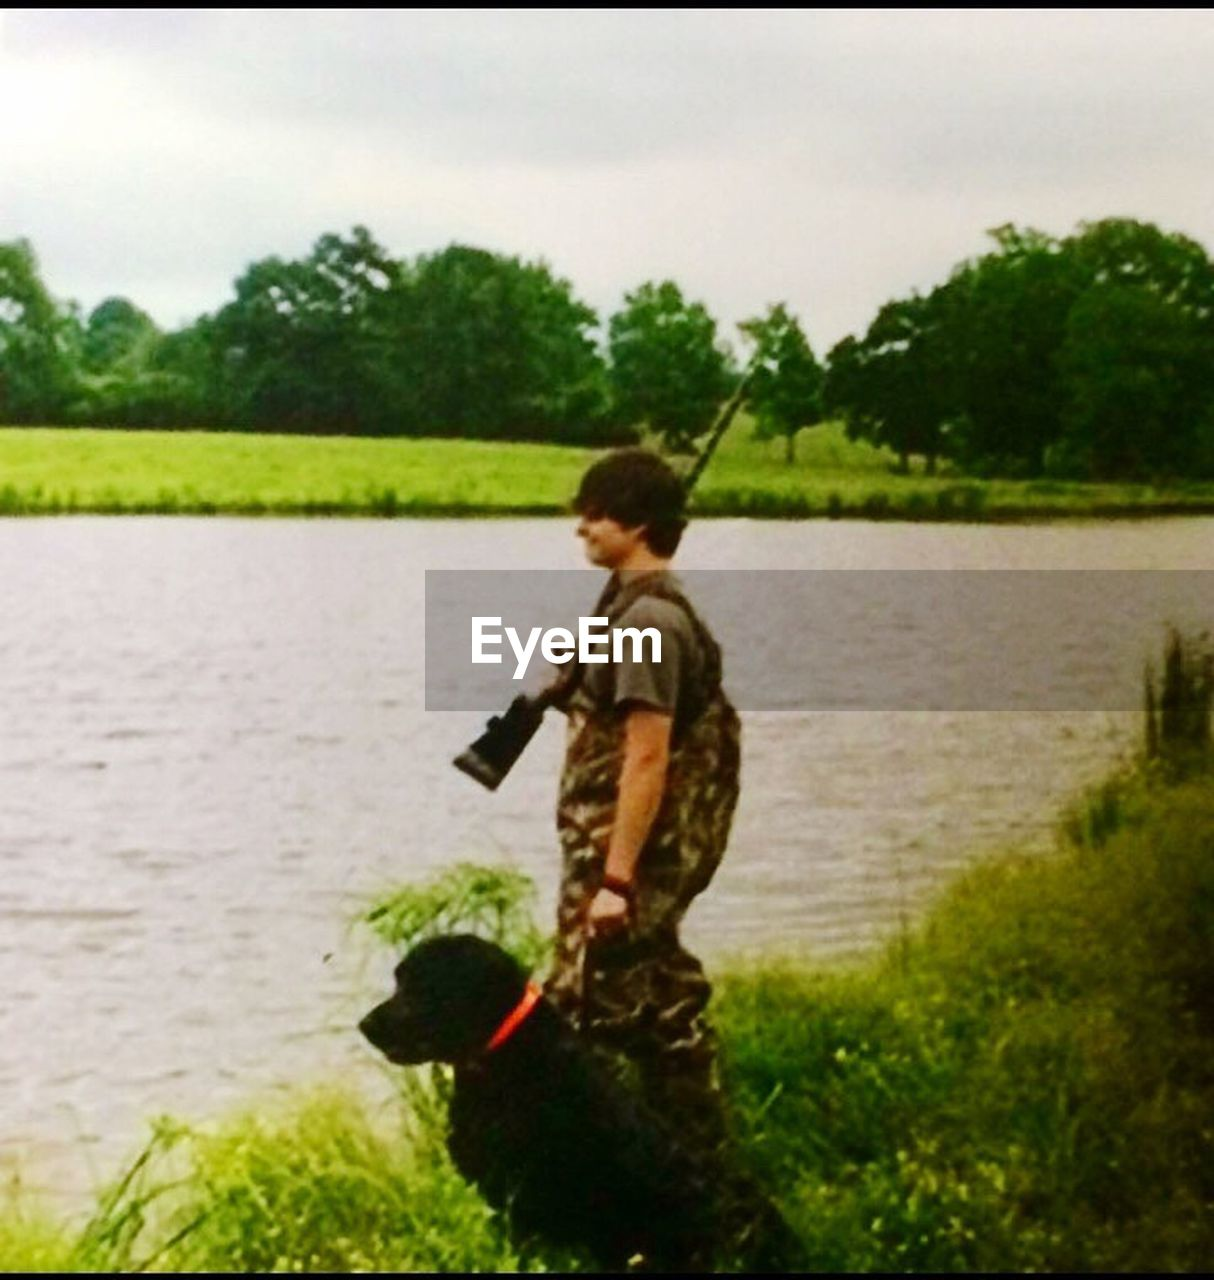 tree, water, one person, standing, childhood, lake, real people, leisure activity, outdoors, day, boys, grass, side view, nature, one animal, sky, full length, one boy only, people